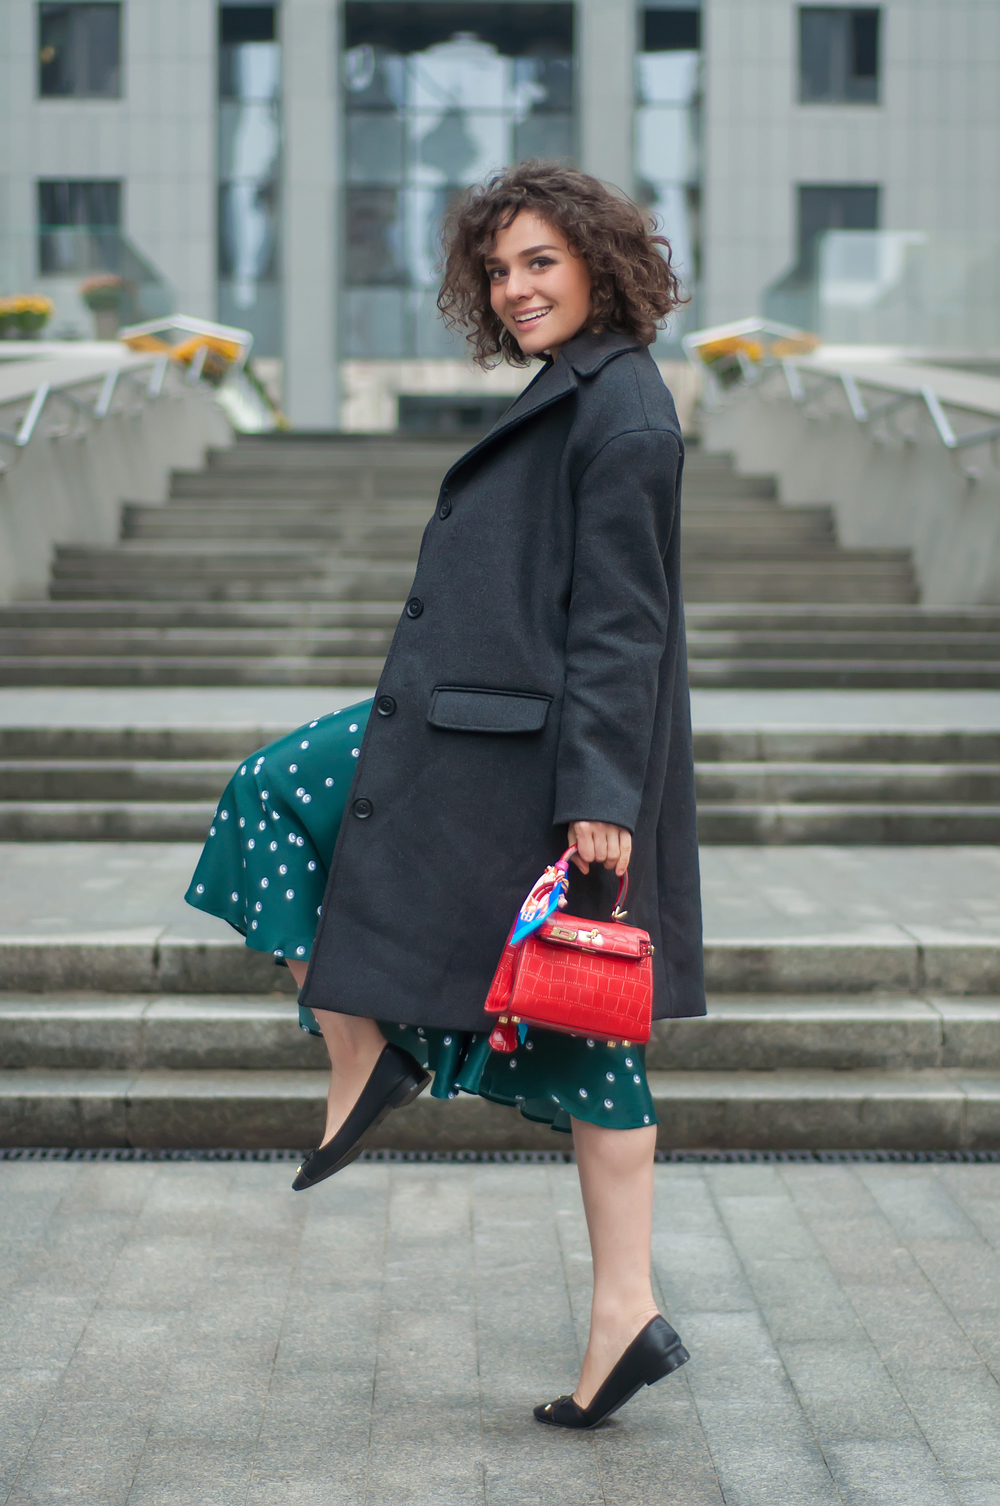 Coat - &other stories | Dress - &other stories | Shoes - Forever21 |